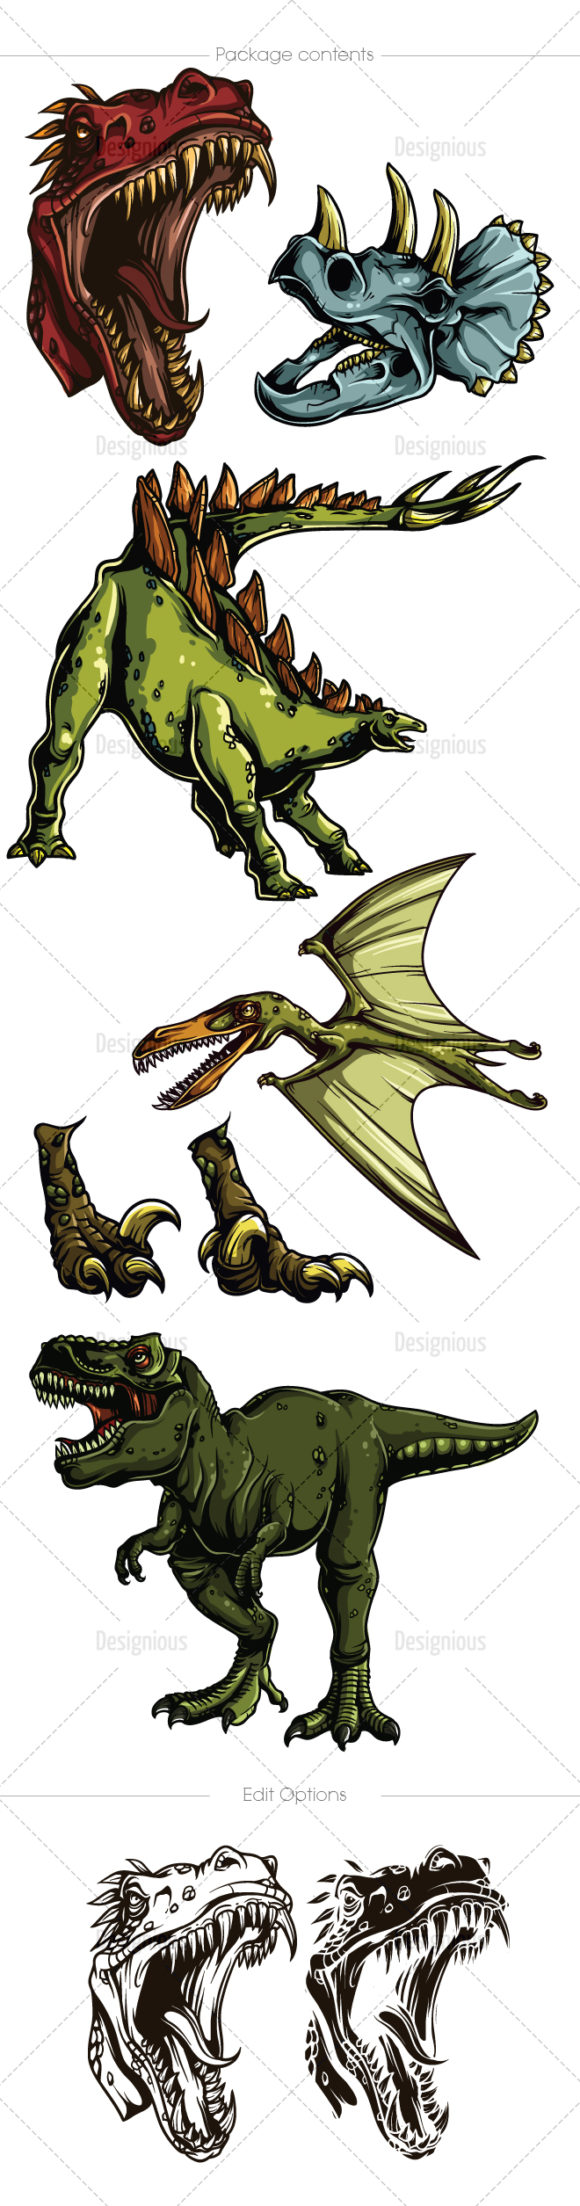 Dino Vector Pack 1 6